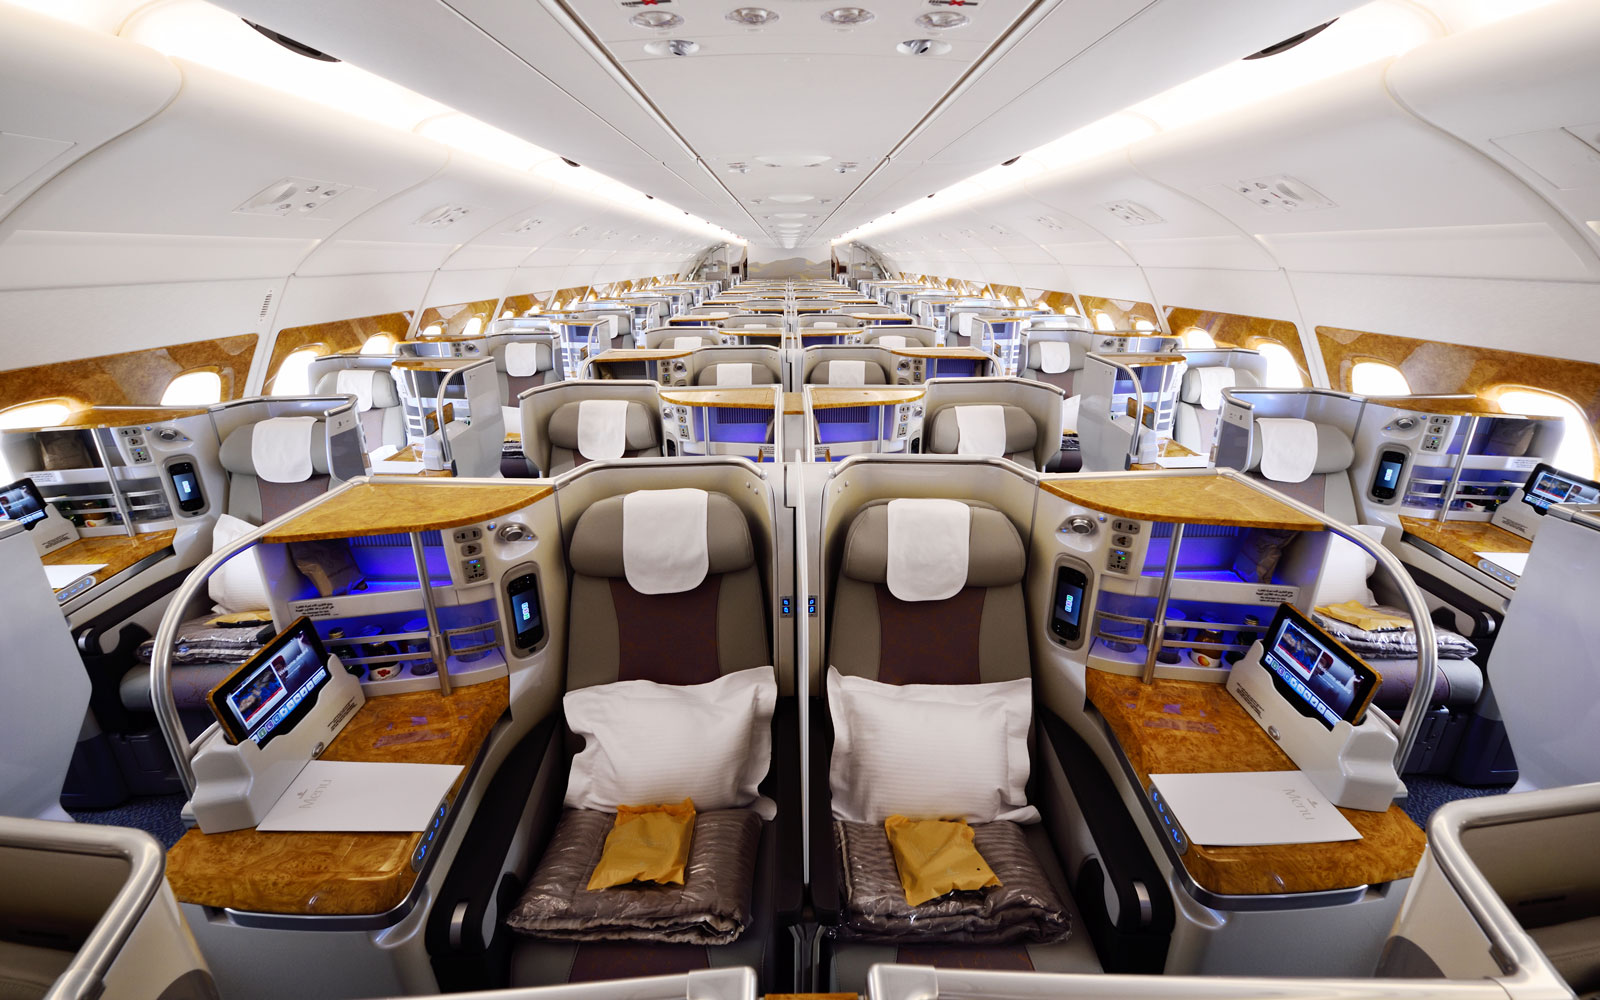 Emirates Becomes First Airline to Offer More Affordable 'Basic' Business Class Fares